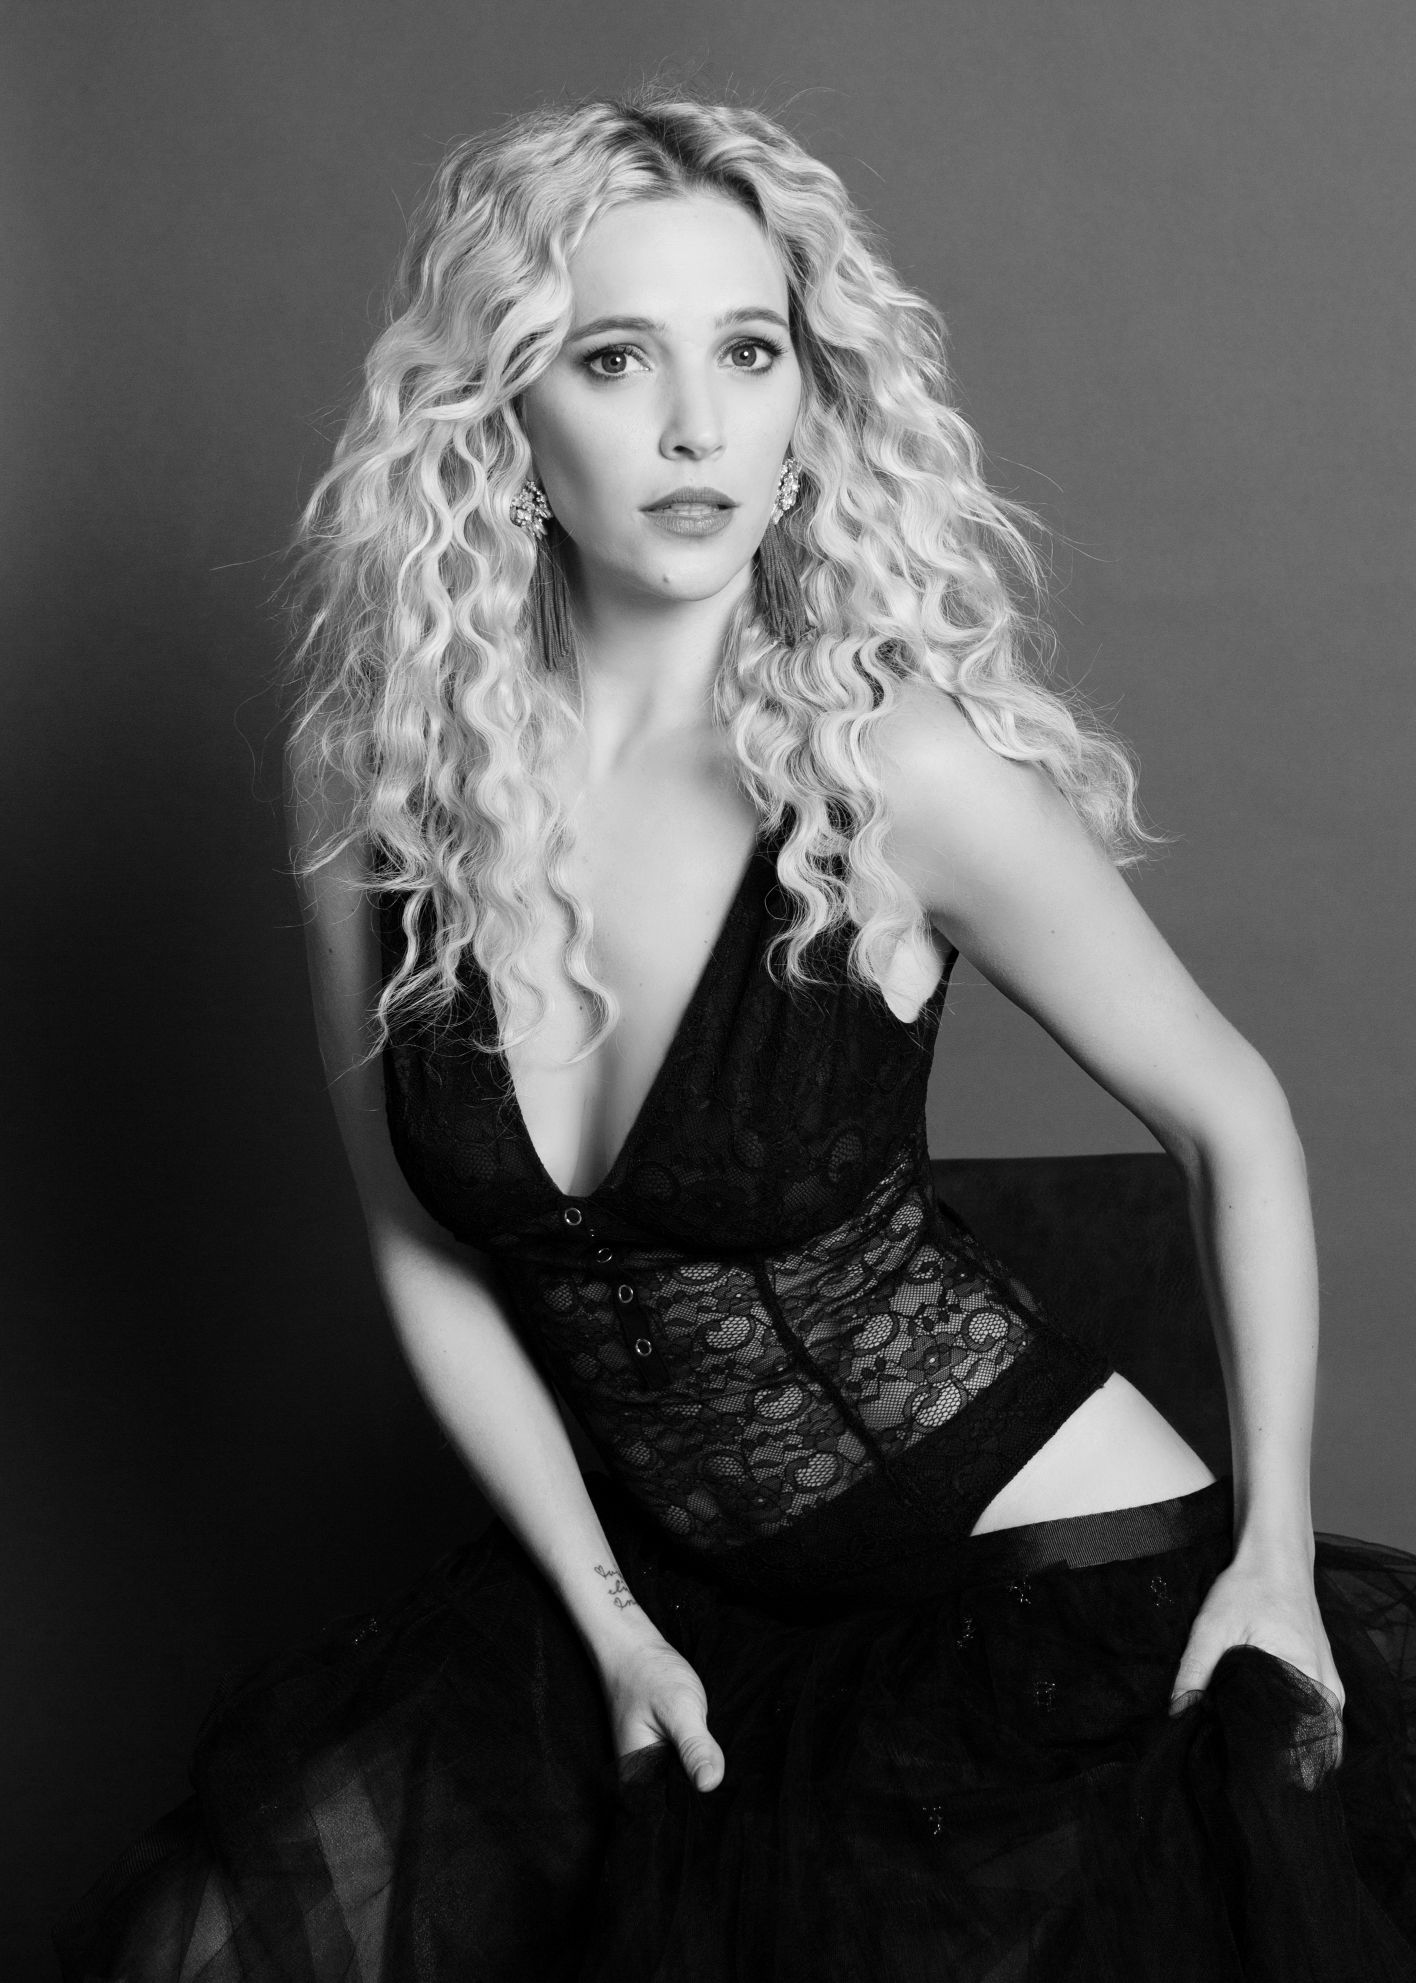 Vancouver Boudoir classic black and white image Luisana Lopilato famous actress